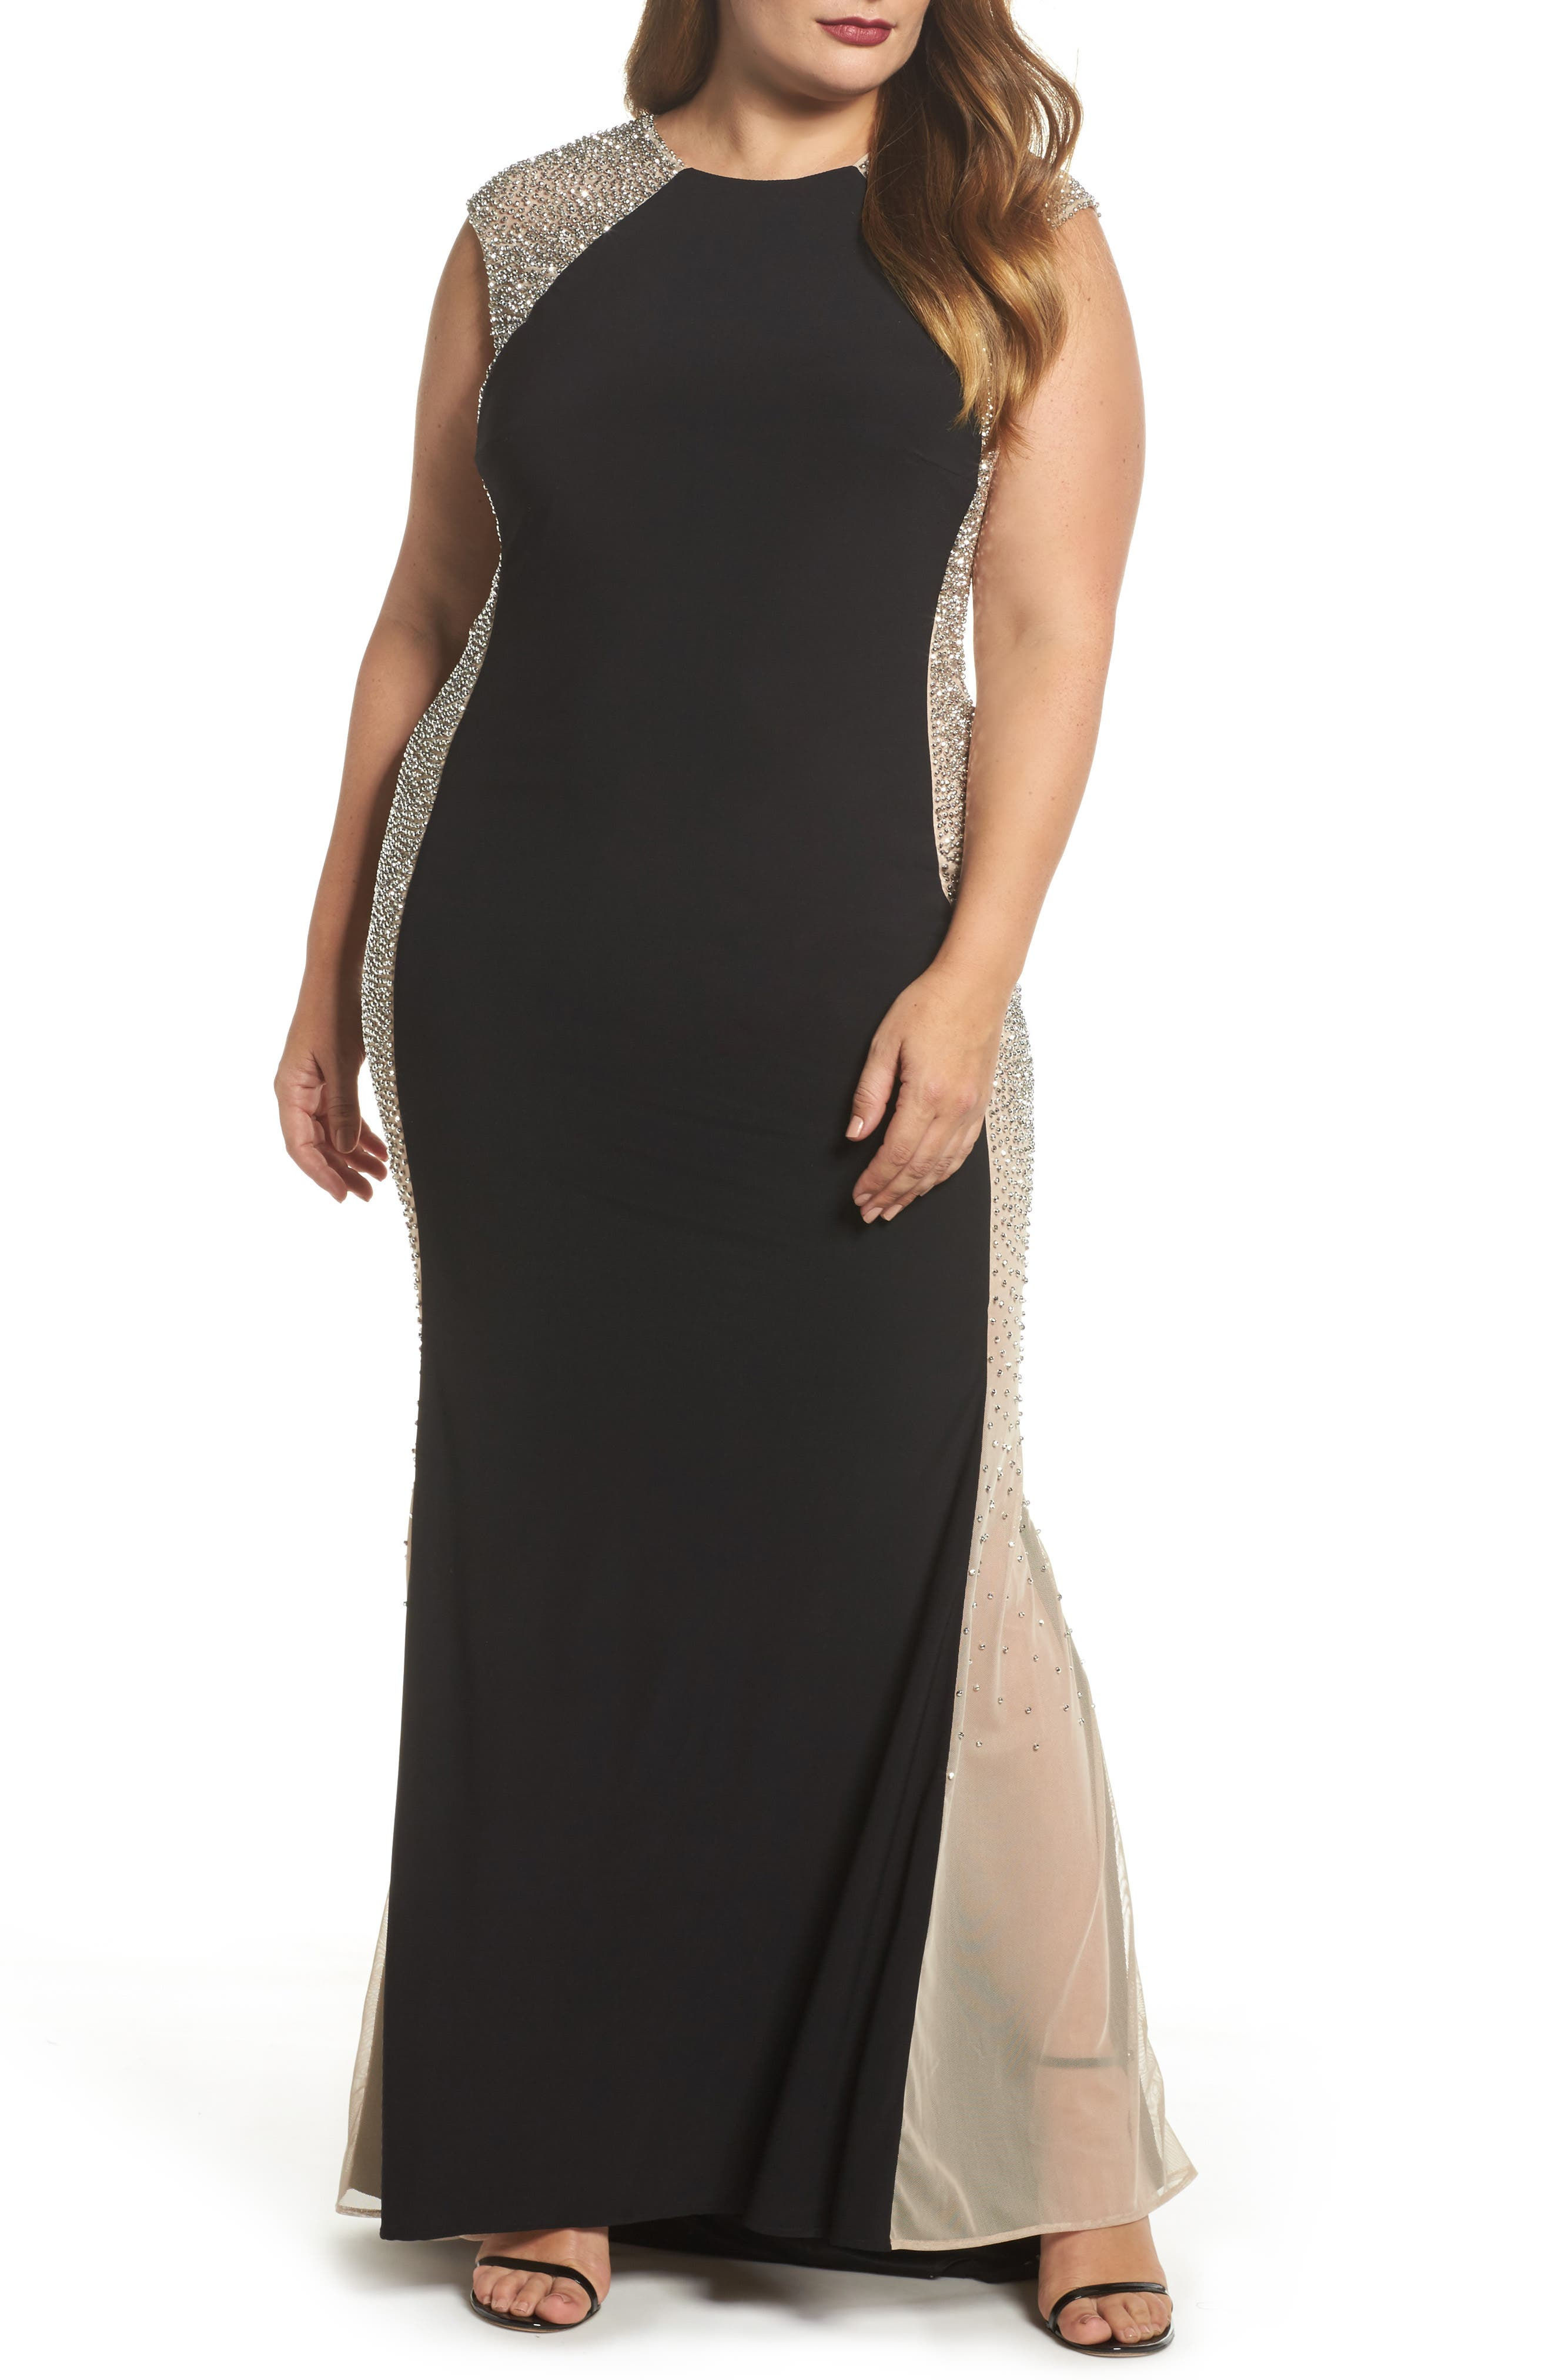 Beaded High Neck Column Gown,                             Main thumbnail 1, color,                             Black/ Nude/ Silver